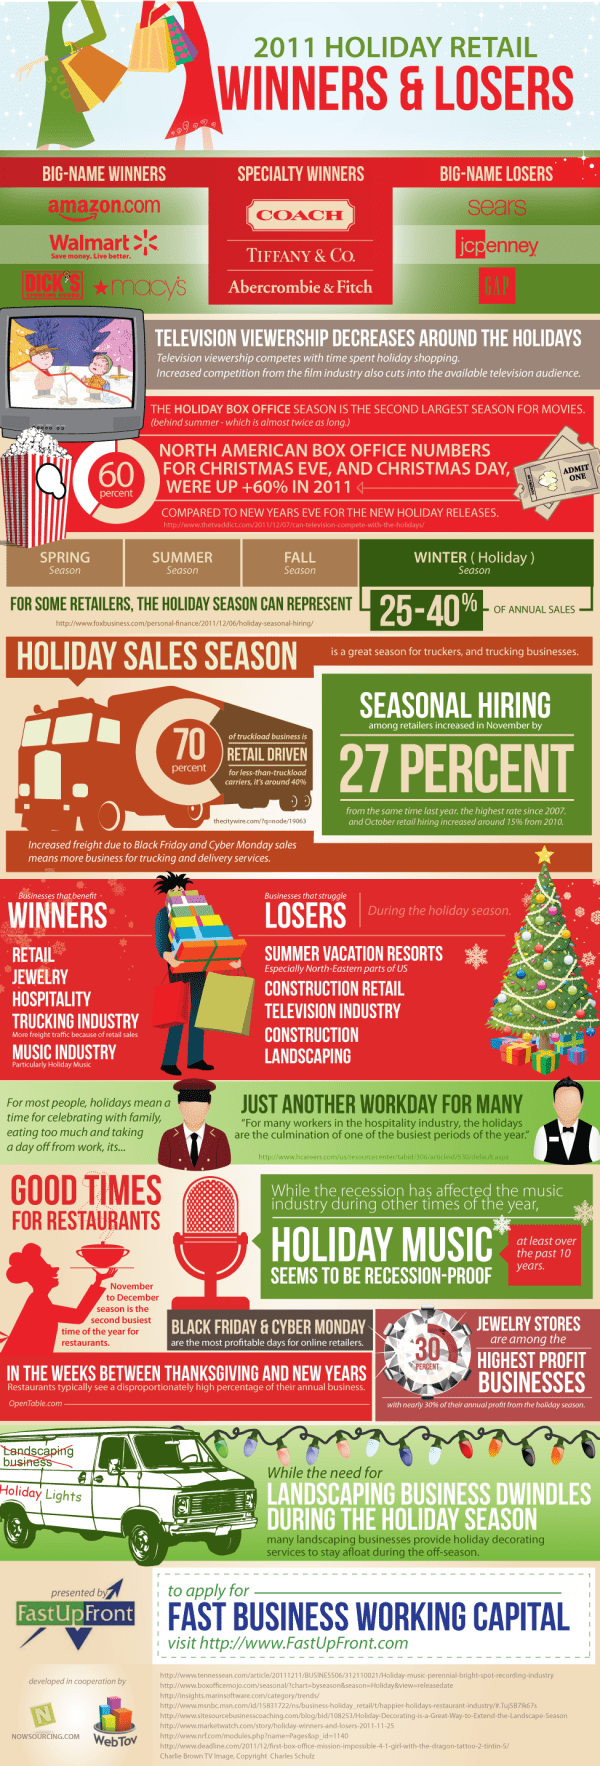 Retail Holiday Winners & Losers [ infographic ]